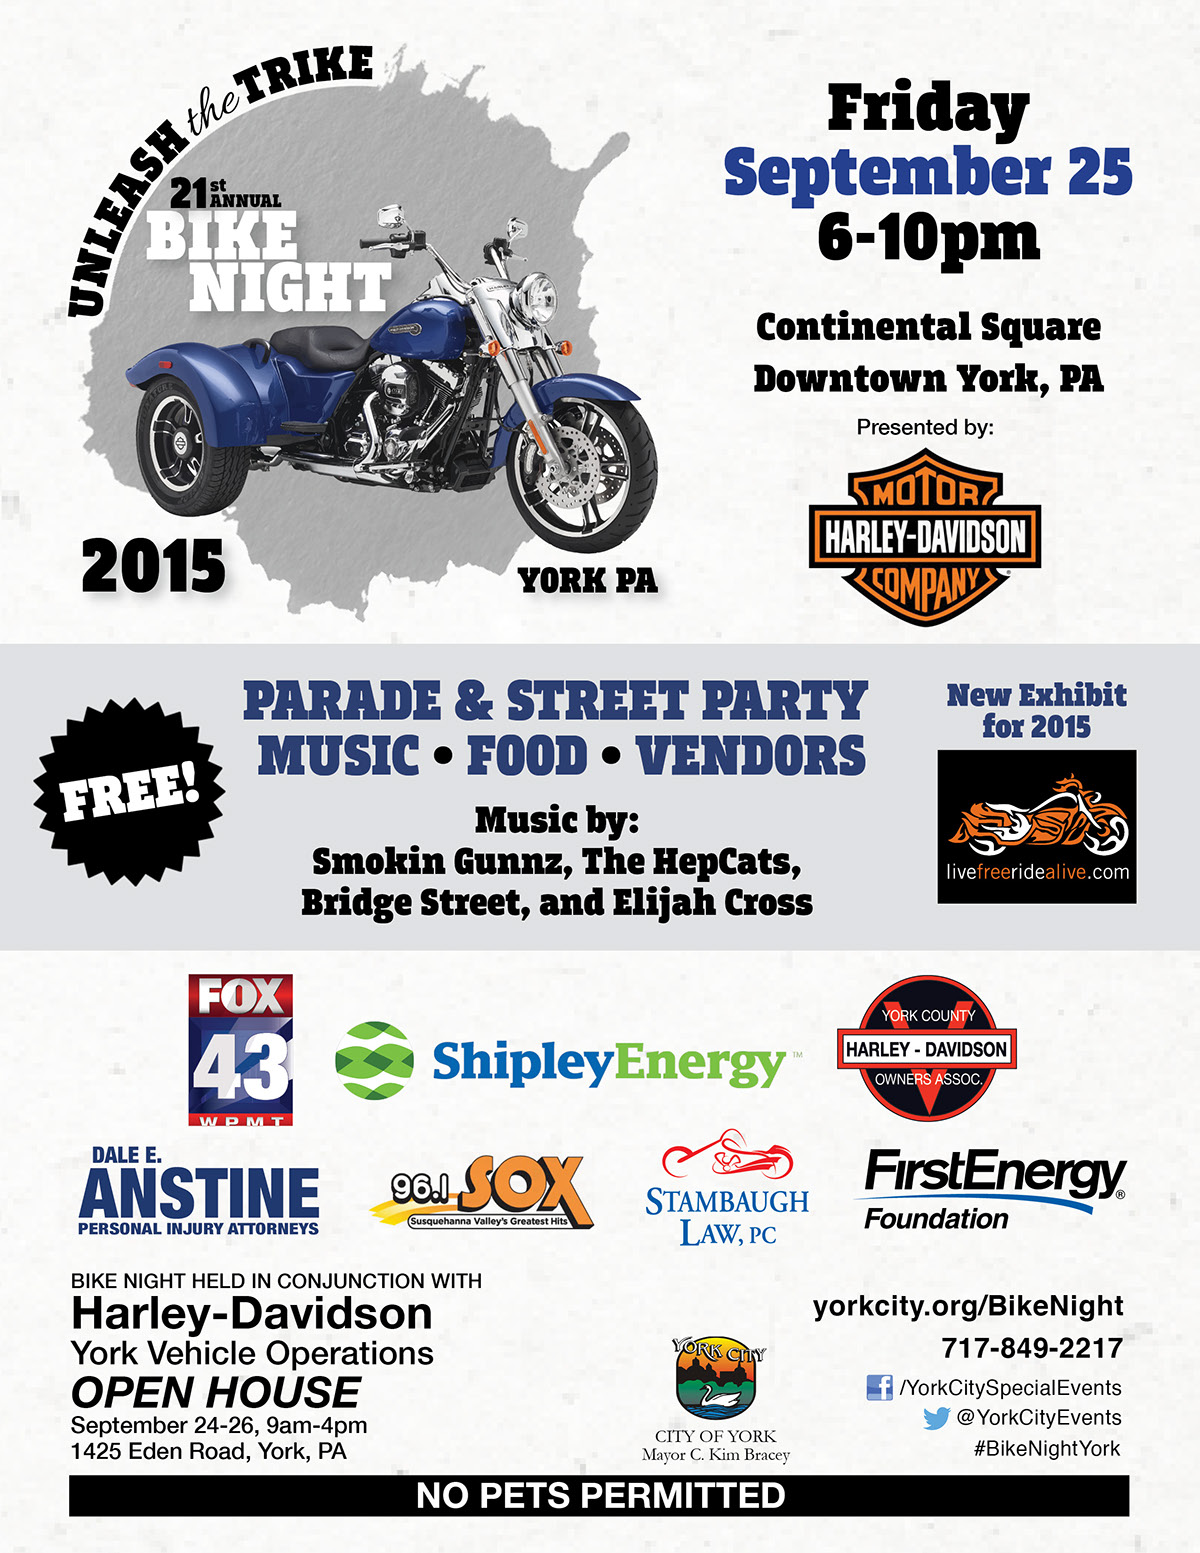 T shirt design york pa - Every Year A Pin For Bike Night Is Designed That Goes Along With The T Shirt The Above Was The 2015 Pin Design